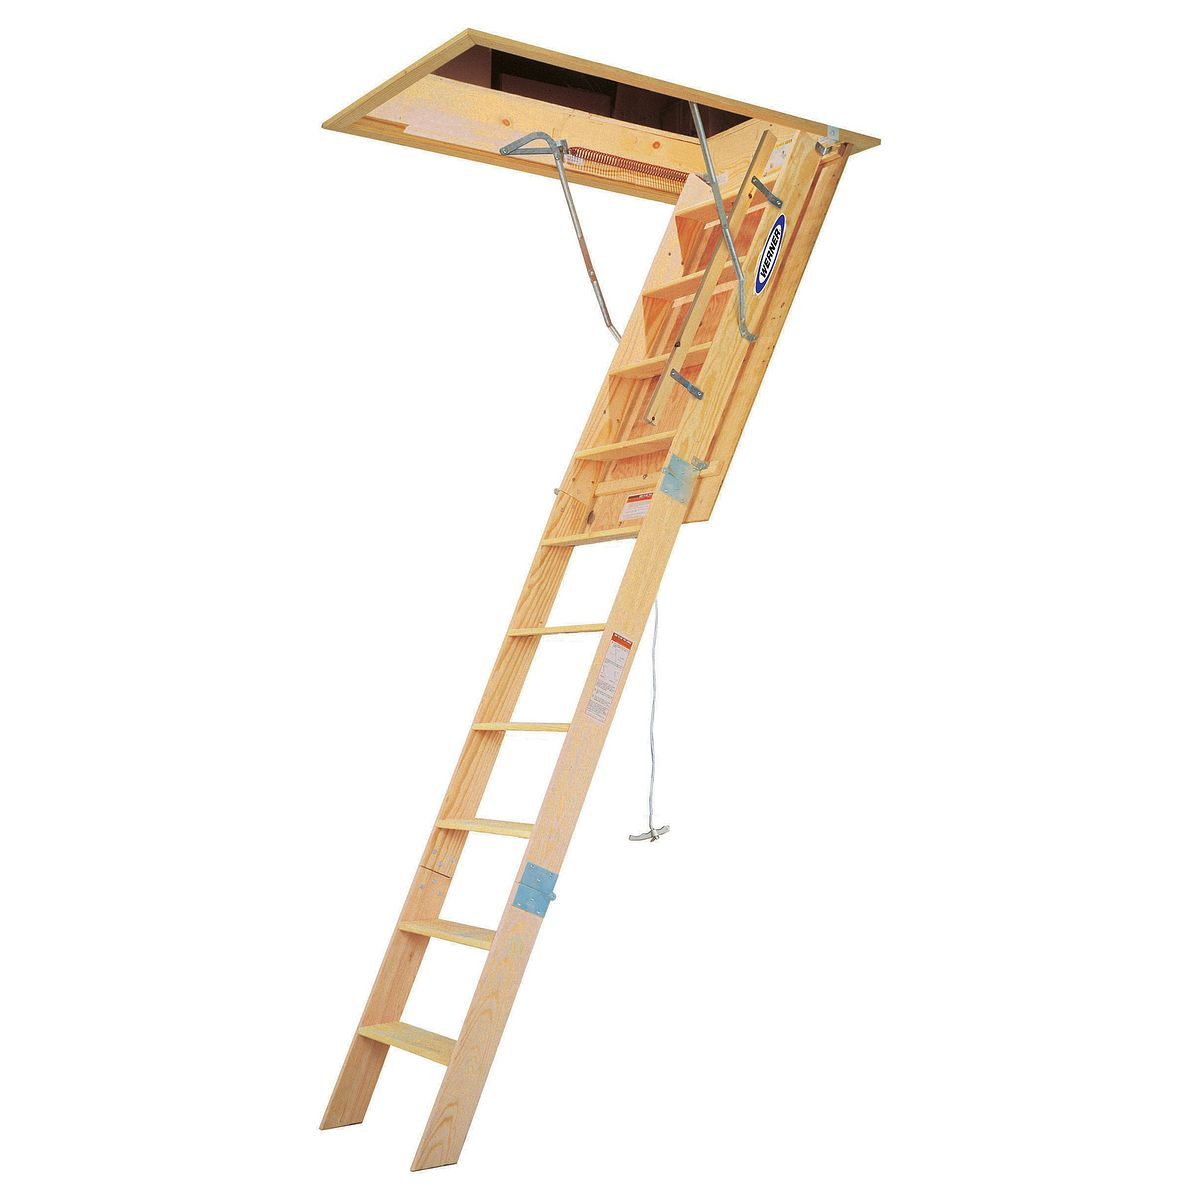 Wh3010 Attic Ladders Werner Us